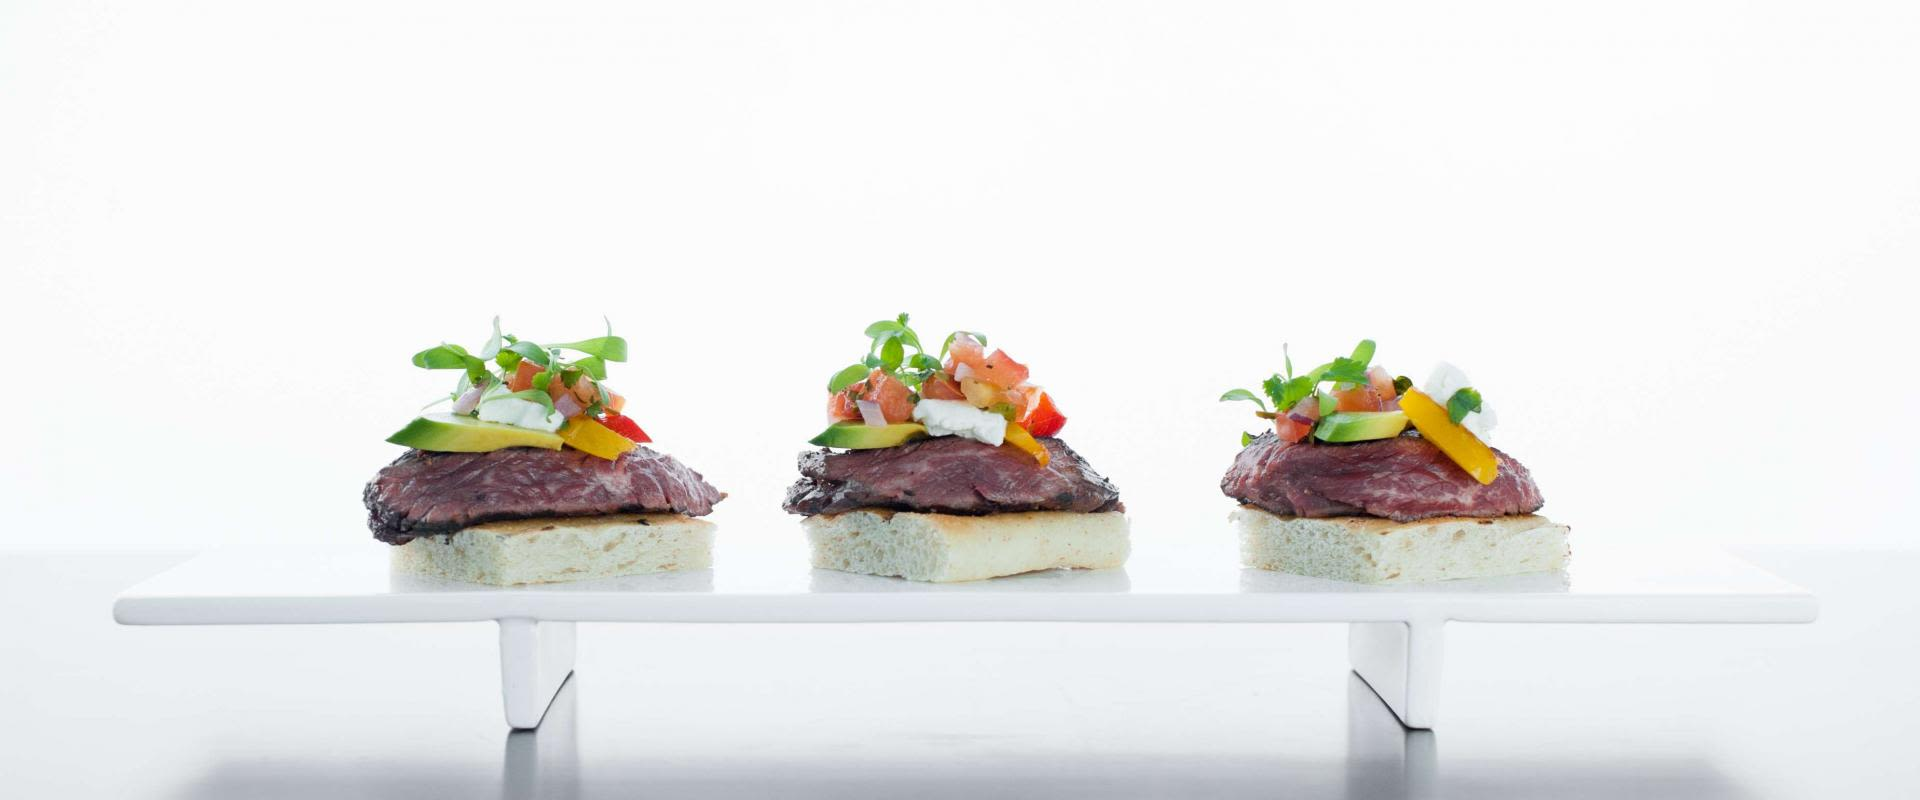 ARA 44 Farms Skirt Steak Crostini